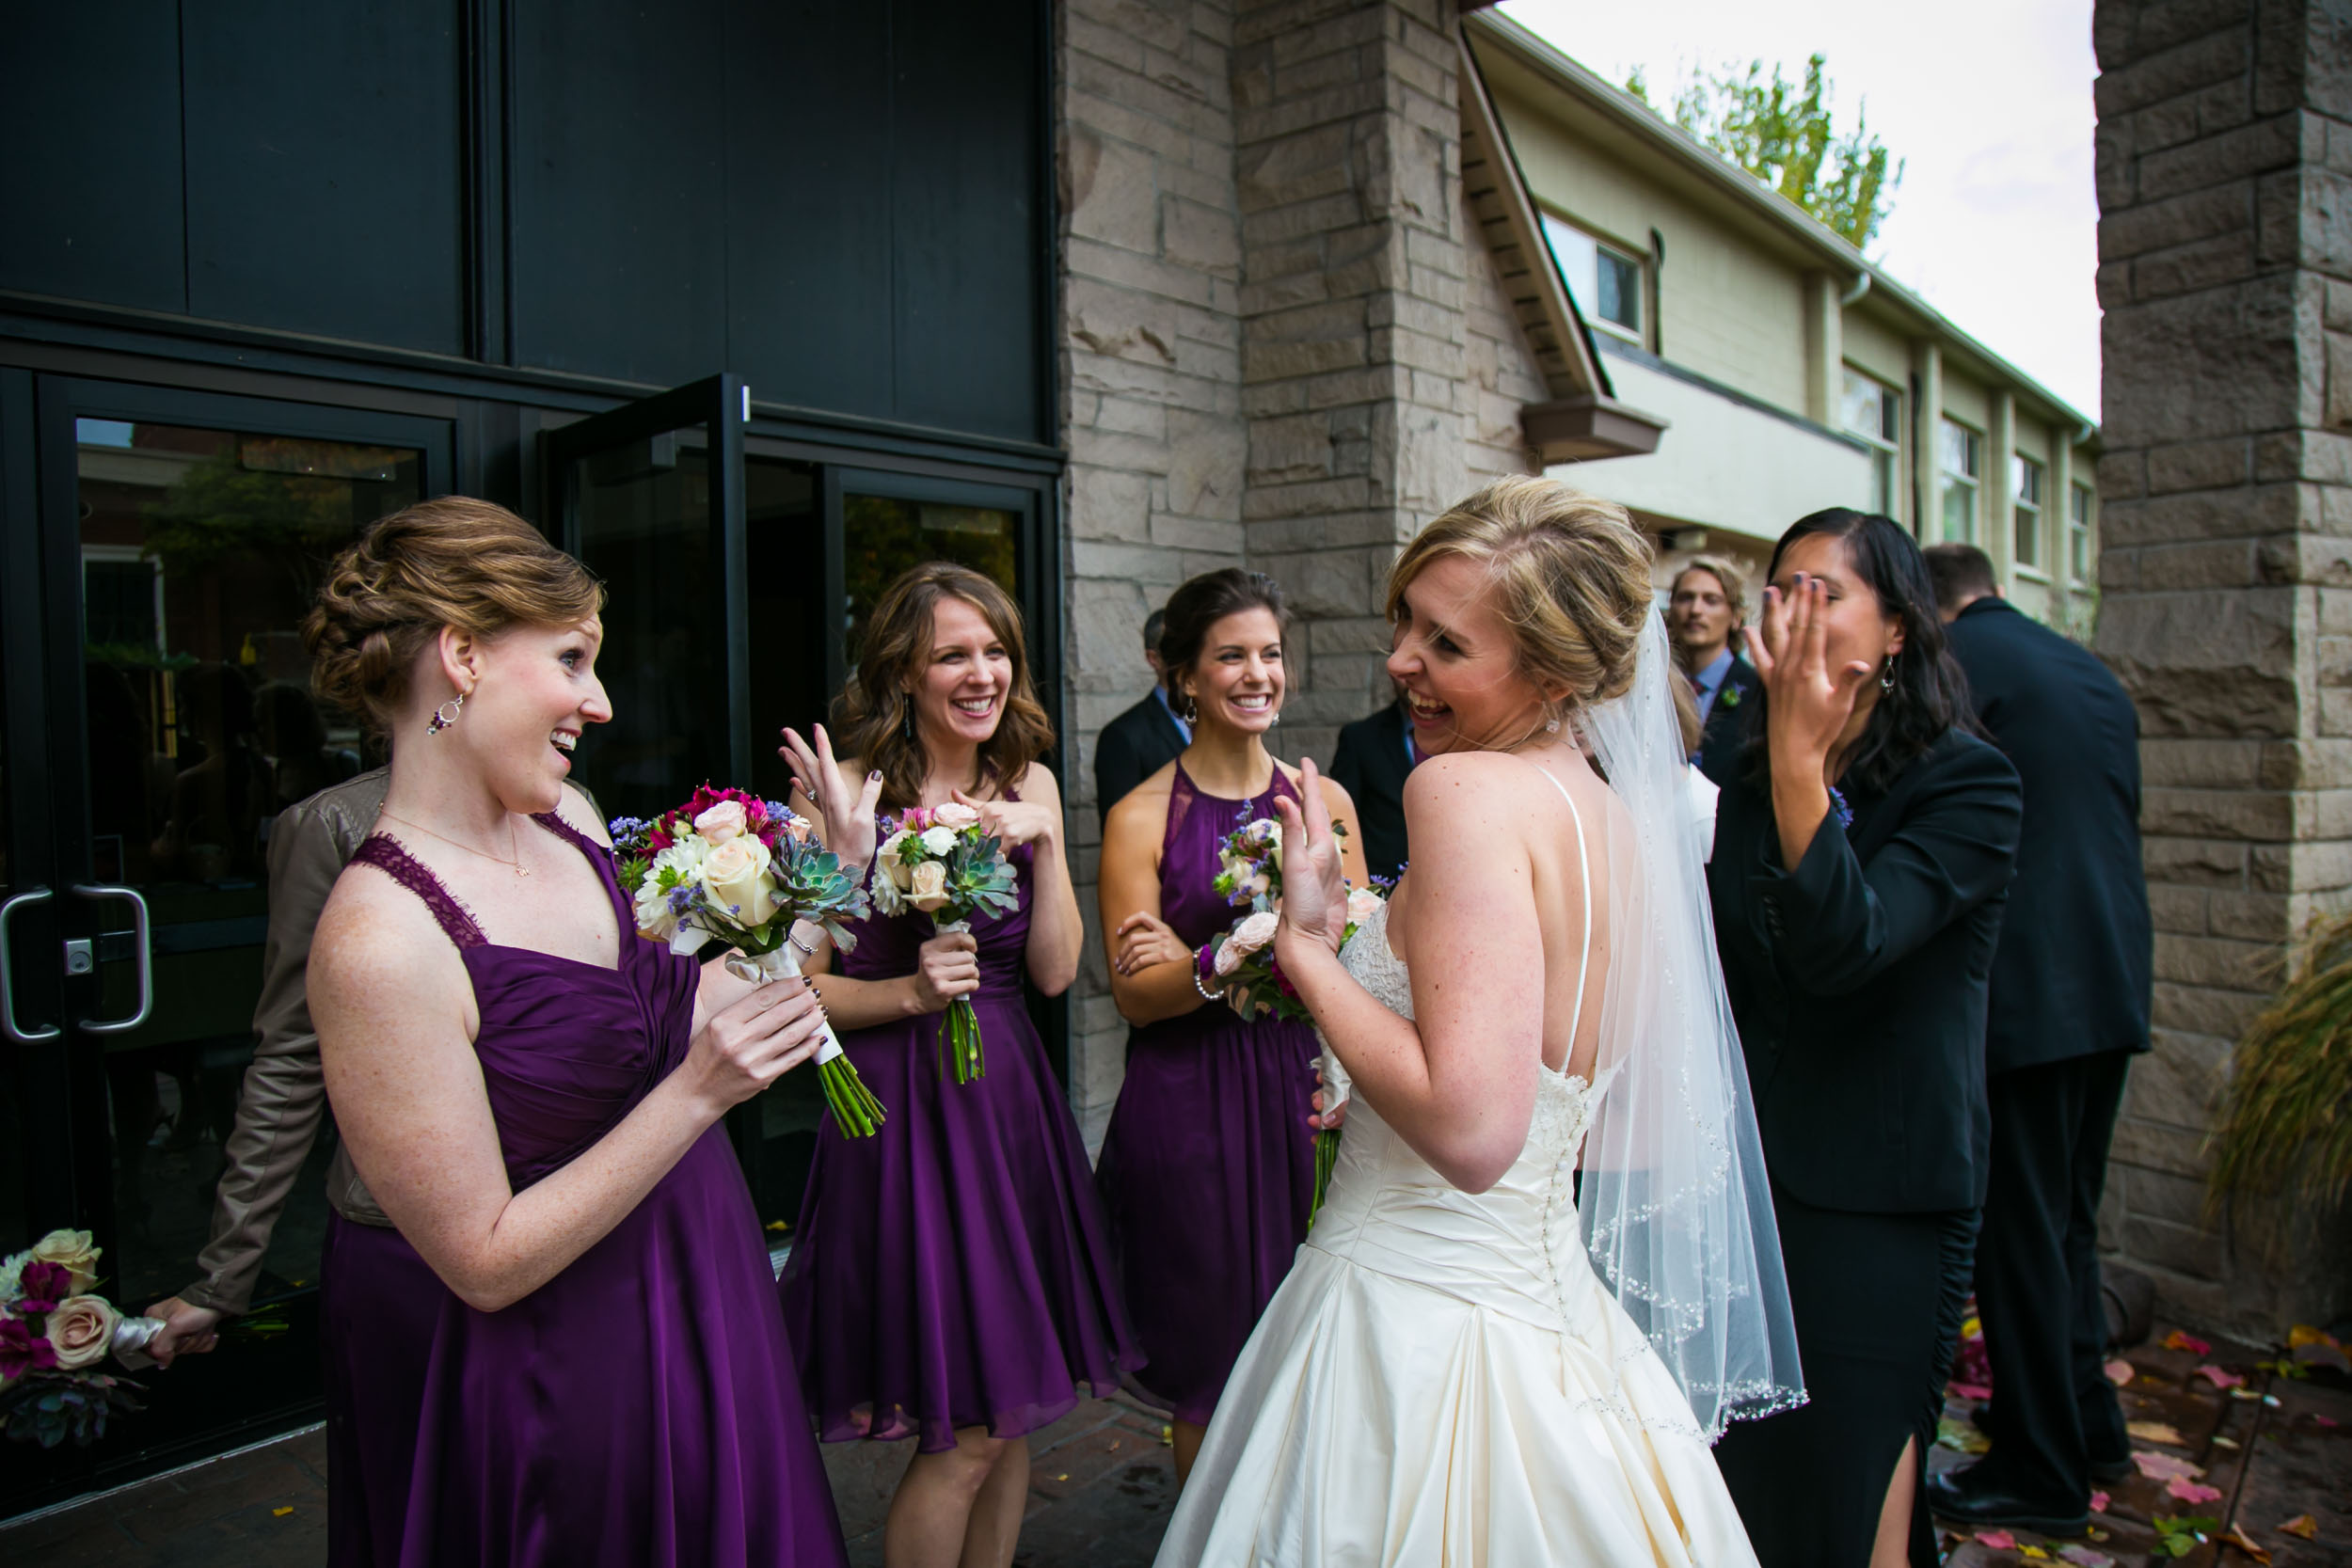 Seattle Community Church Wedding Photography | By G. Lin Photography | Bride happy with bridesmaids